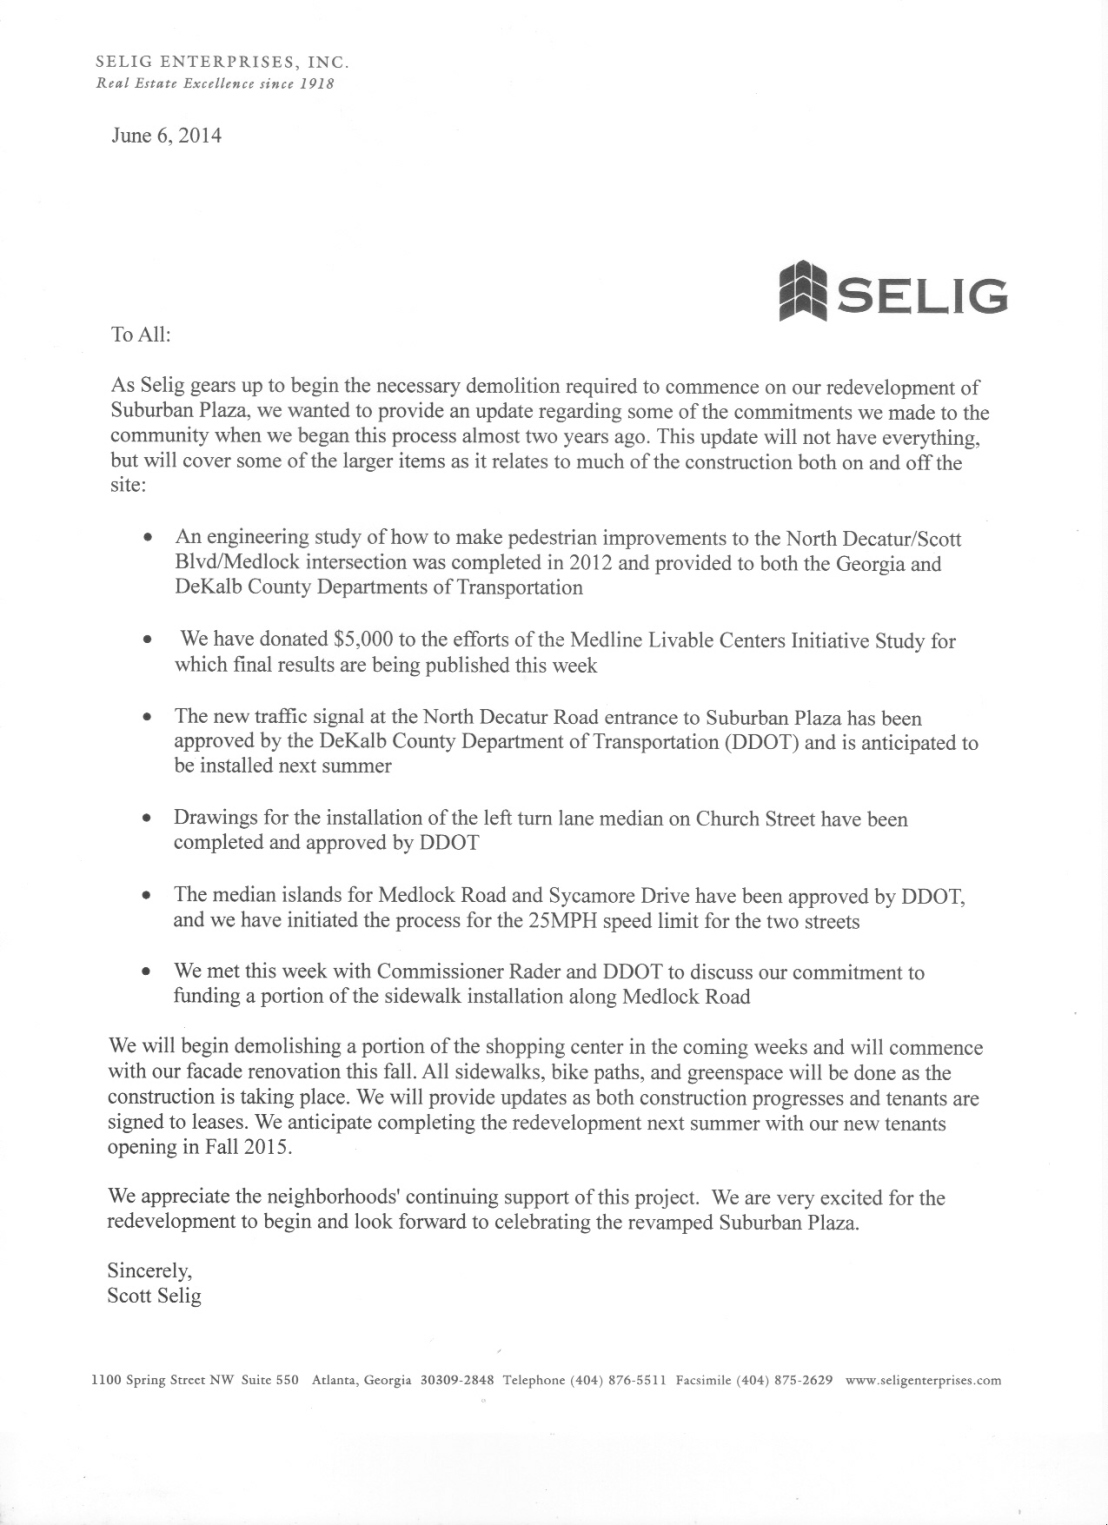 Scott Selig Update on MOU, Schedule 6-6-2014